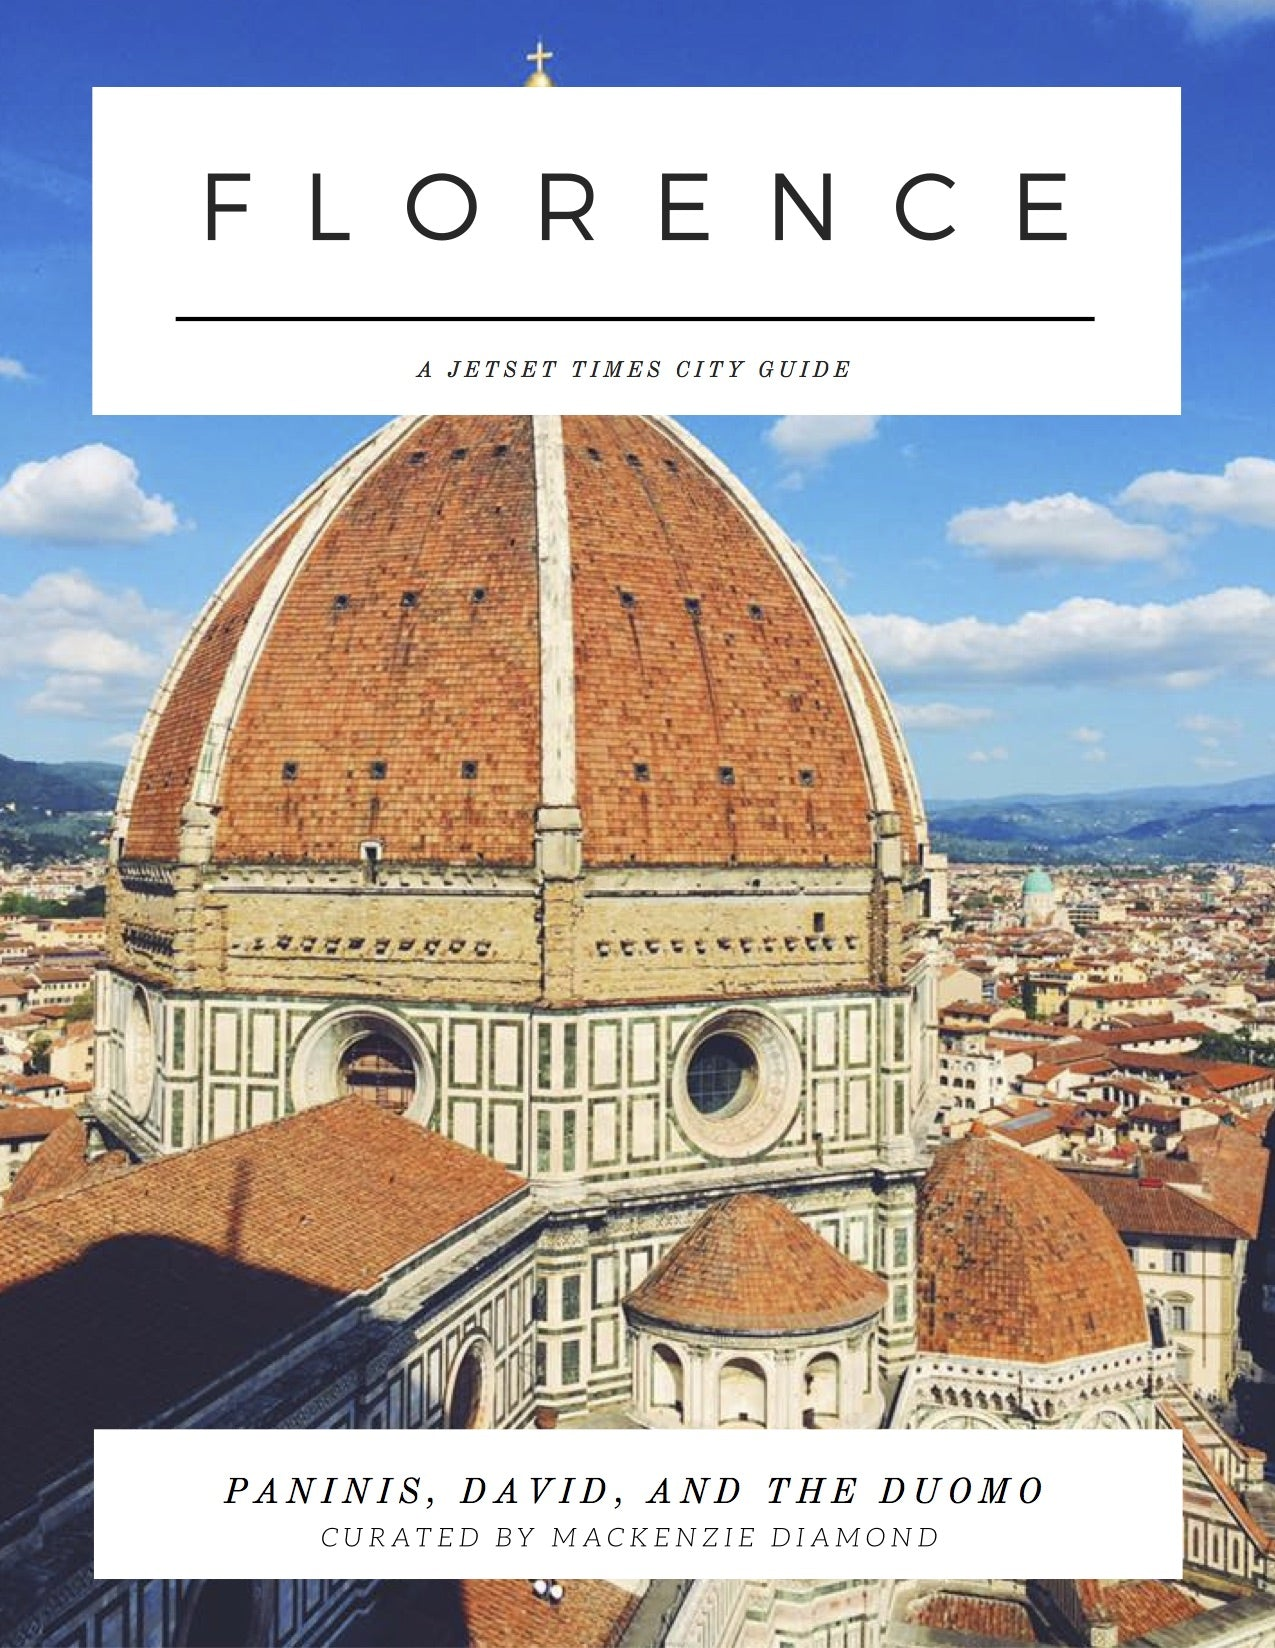 Florence City Guide eBook by Jetset Times